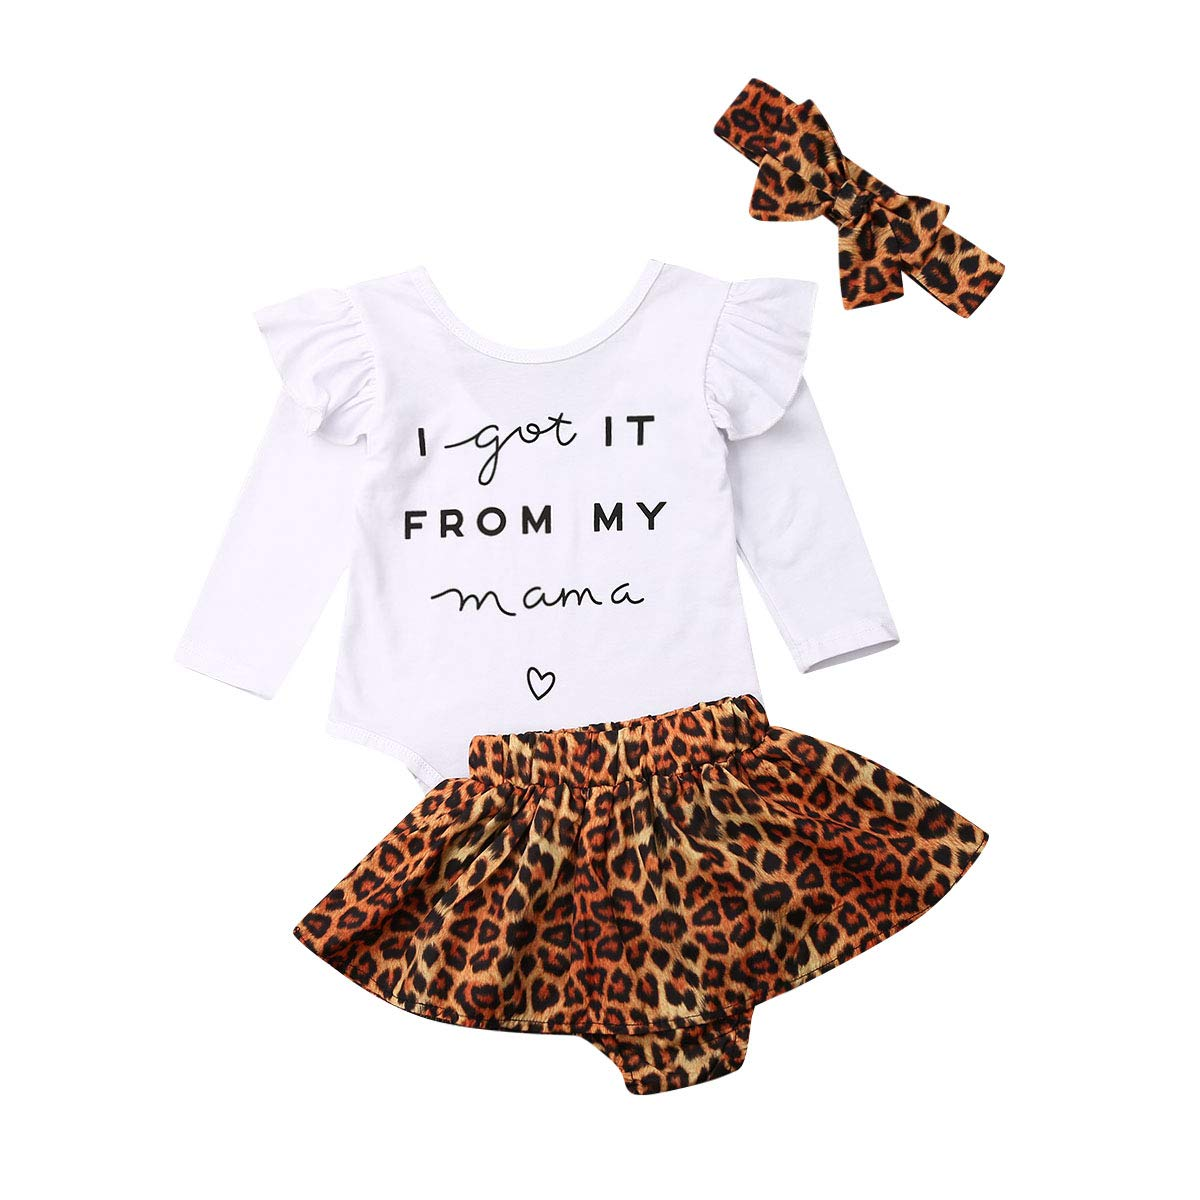 Newborn Baby Girls Clothes Mommy Saying Top Printed Romper Leopard Shorts Skirts+Headband Outfit Set